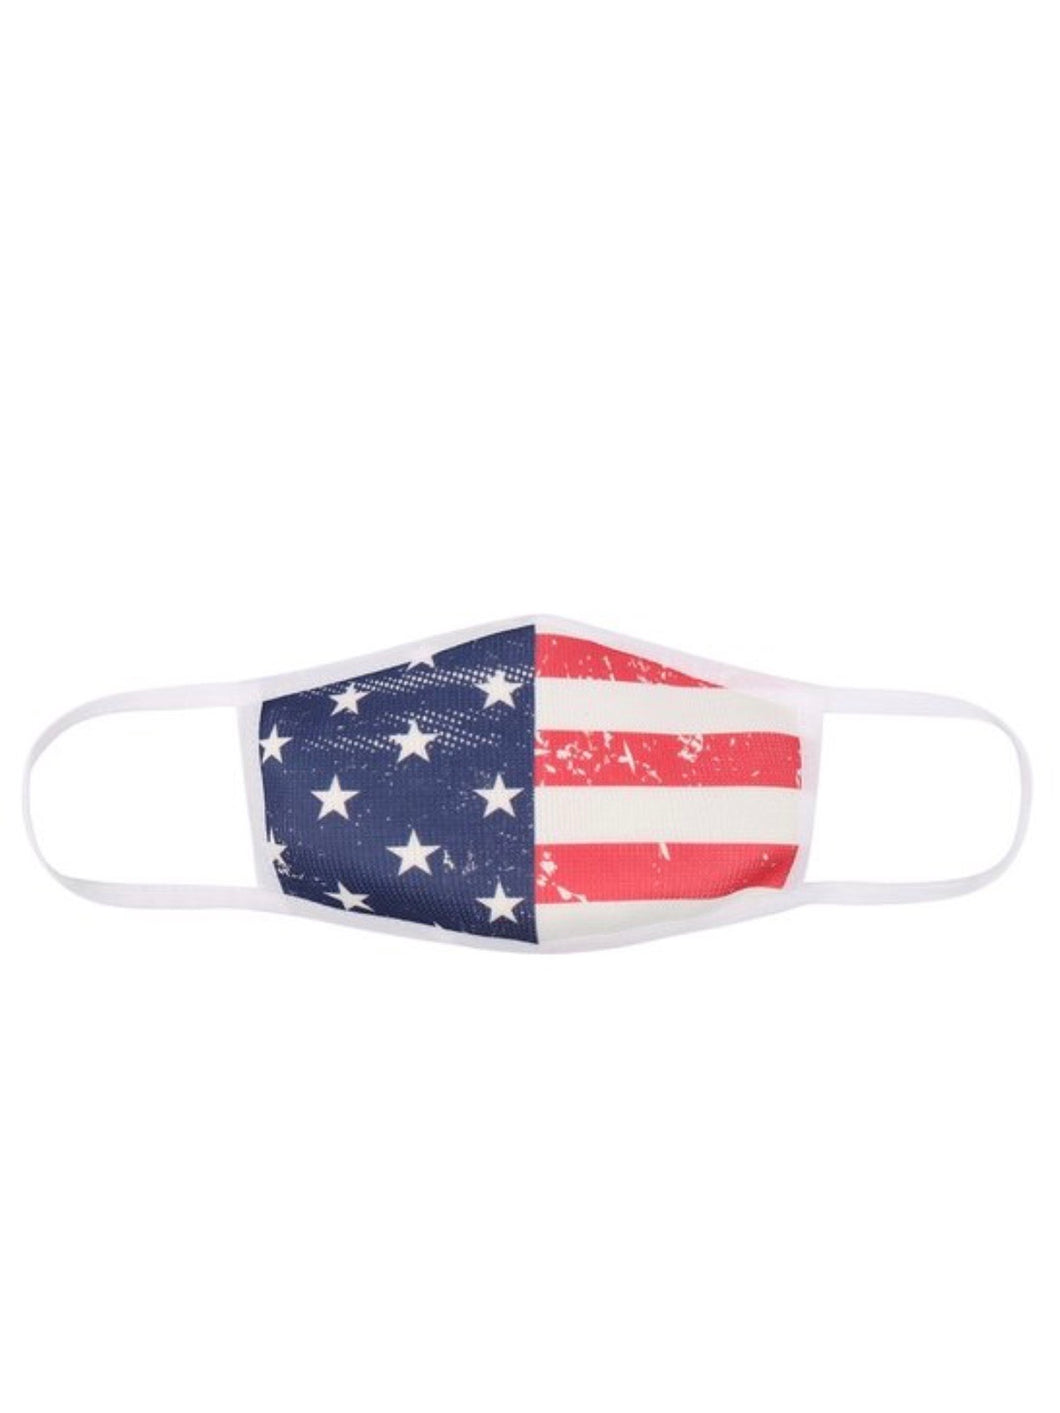 KIDS Reusable made in the USA Premium Weave Flag Face Mask